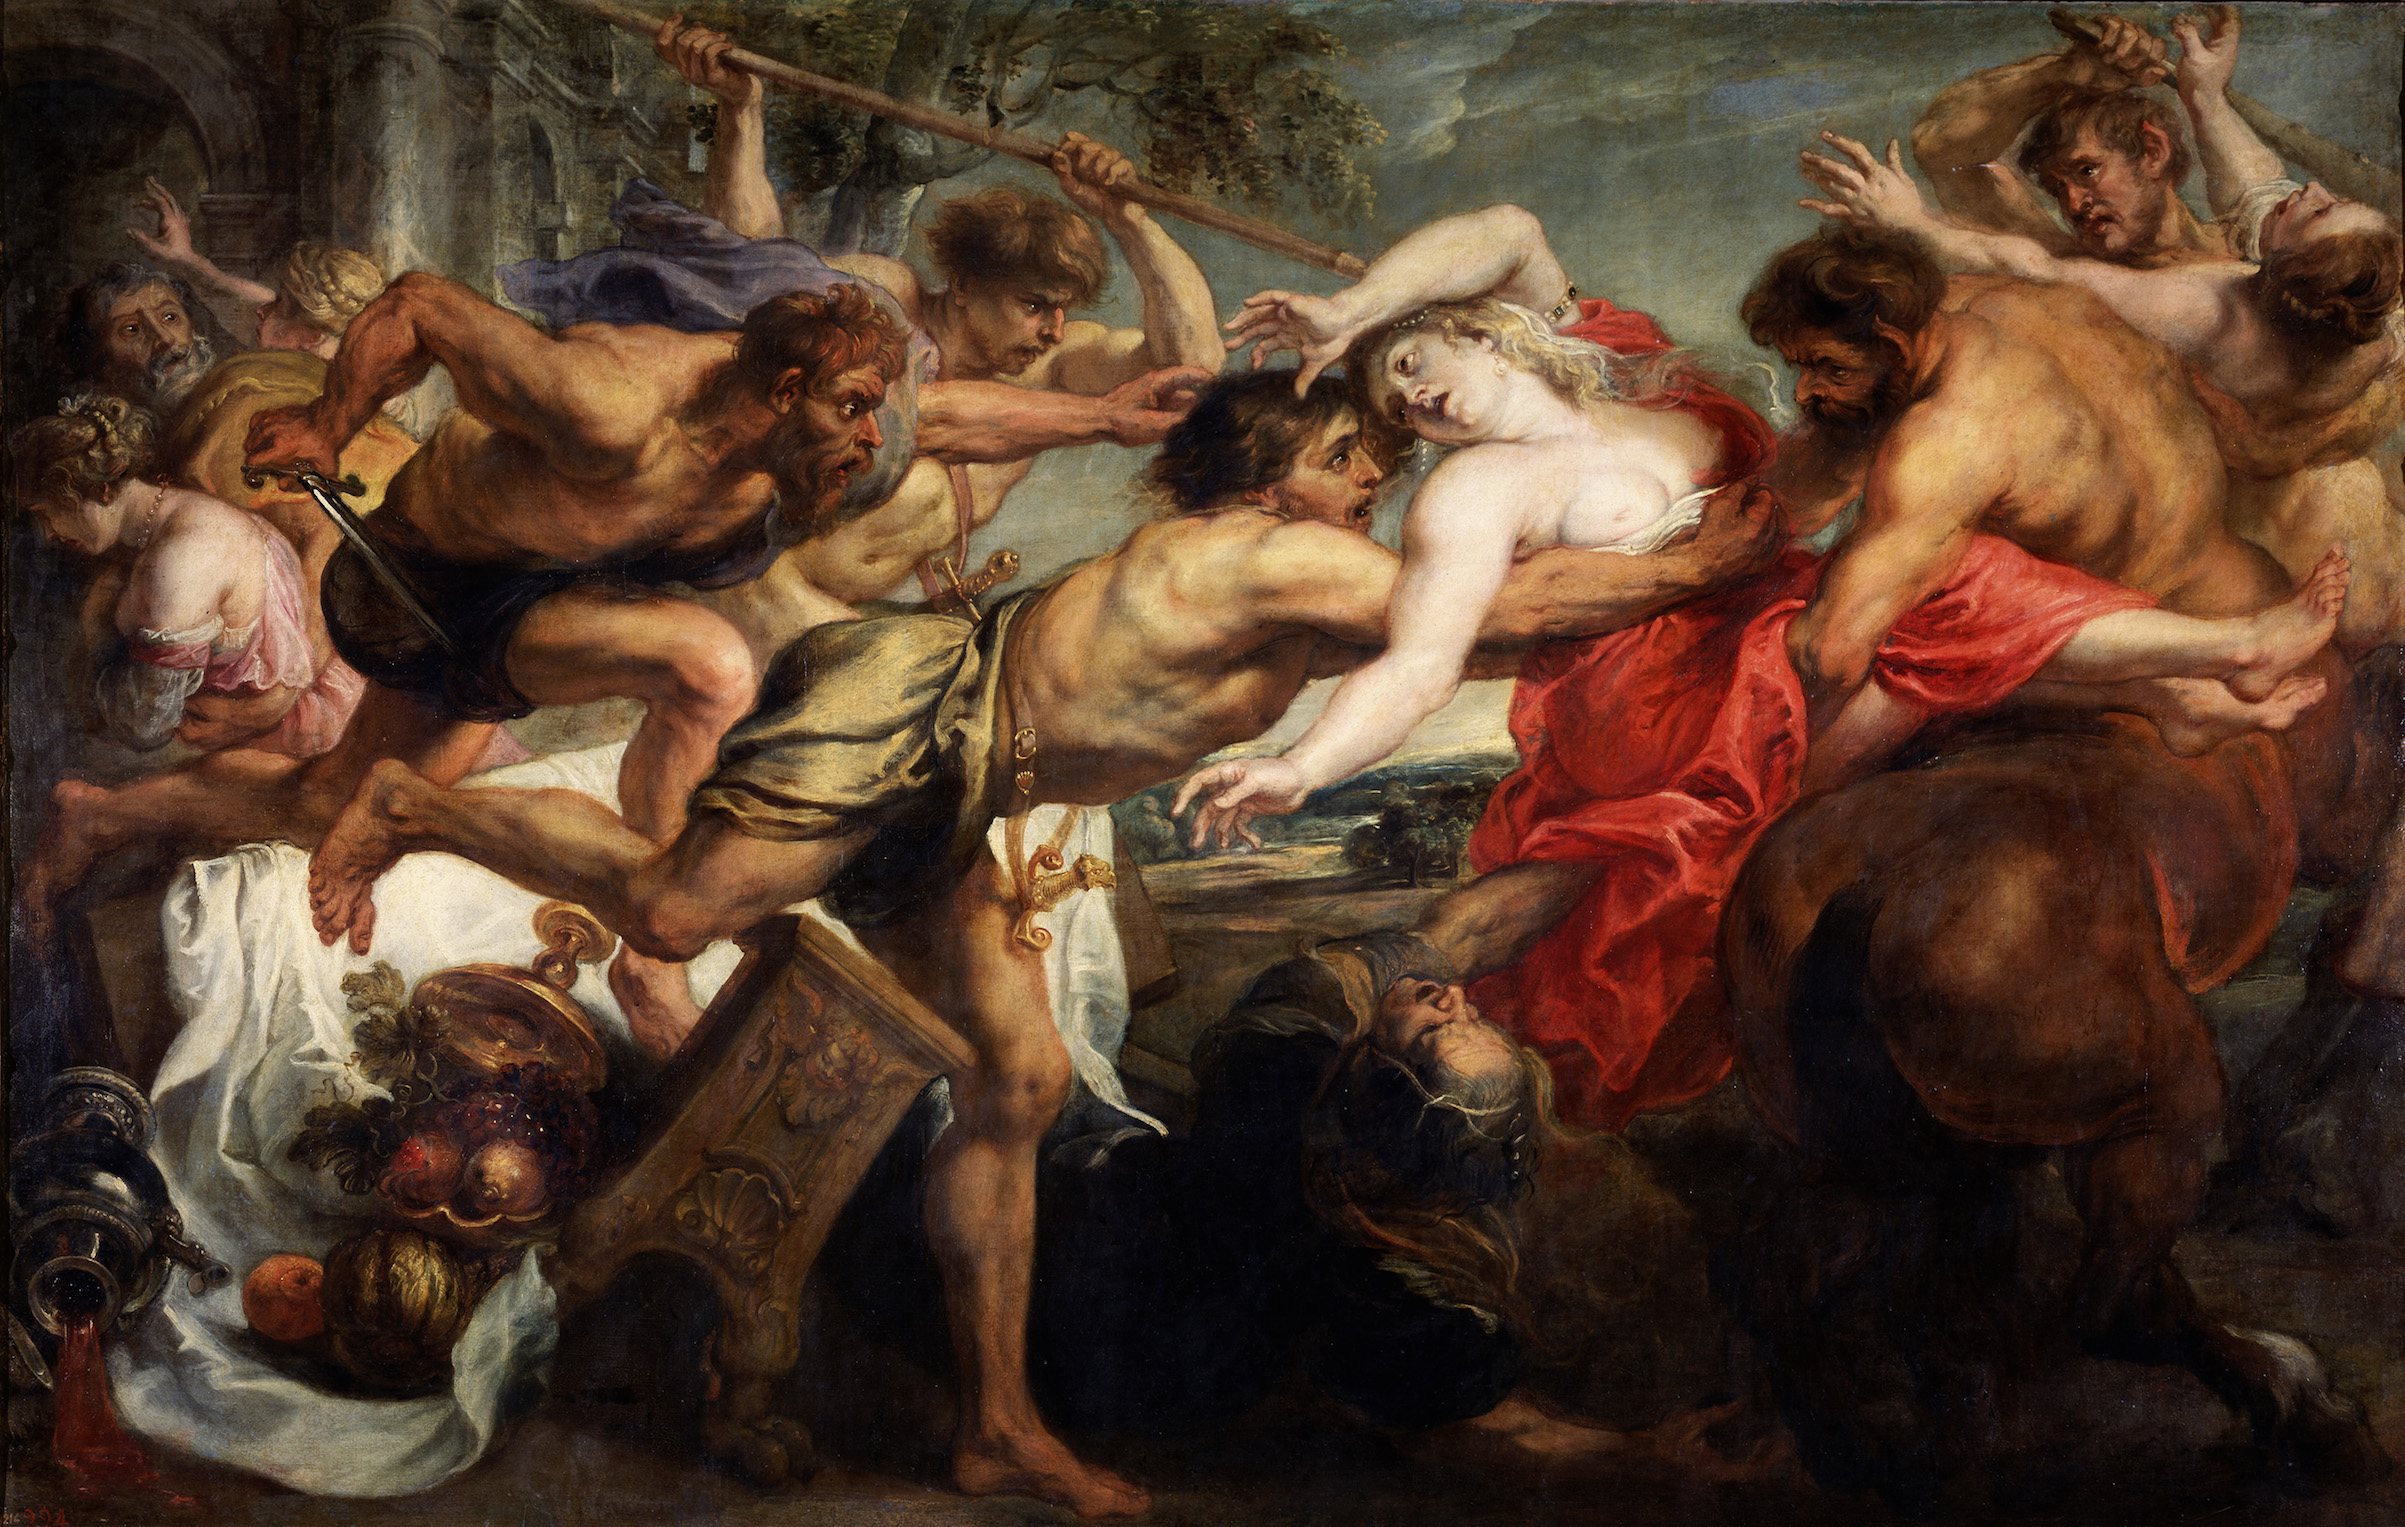 The Abduction of Hippodamia, or Lapiths and Centaurs, 1636-1638, by Pieter Paul Rubens. The story of the battle of the Lapiths and Centaurs is part of Ovid's 'Metamorphoses.'